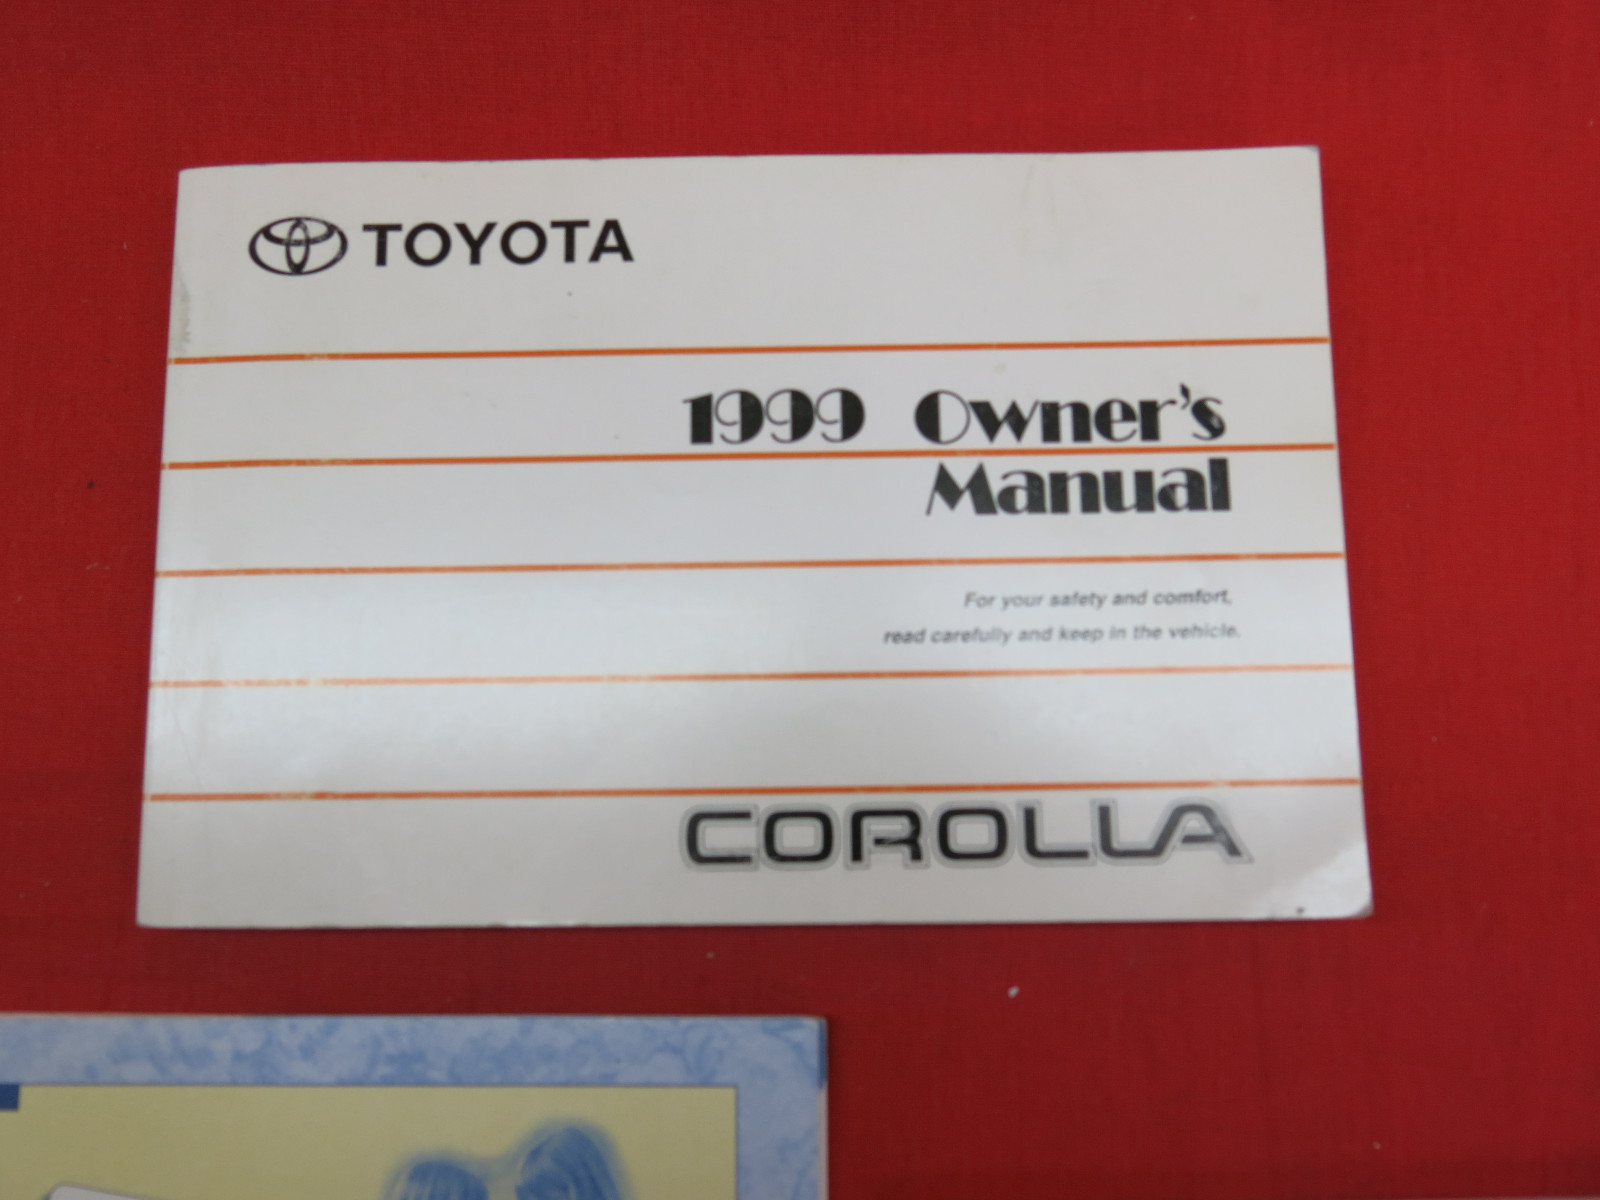 1999 toyota corolla owners manual guide book ebay. Black Bedroom Furniture Sets. Home Design Ideas